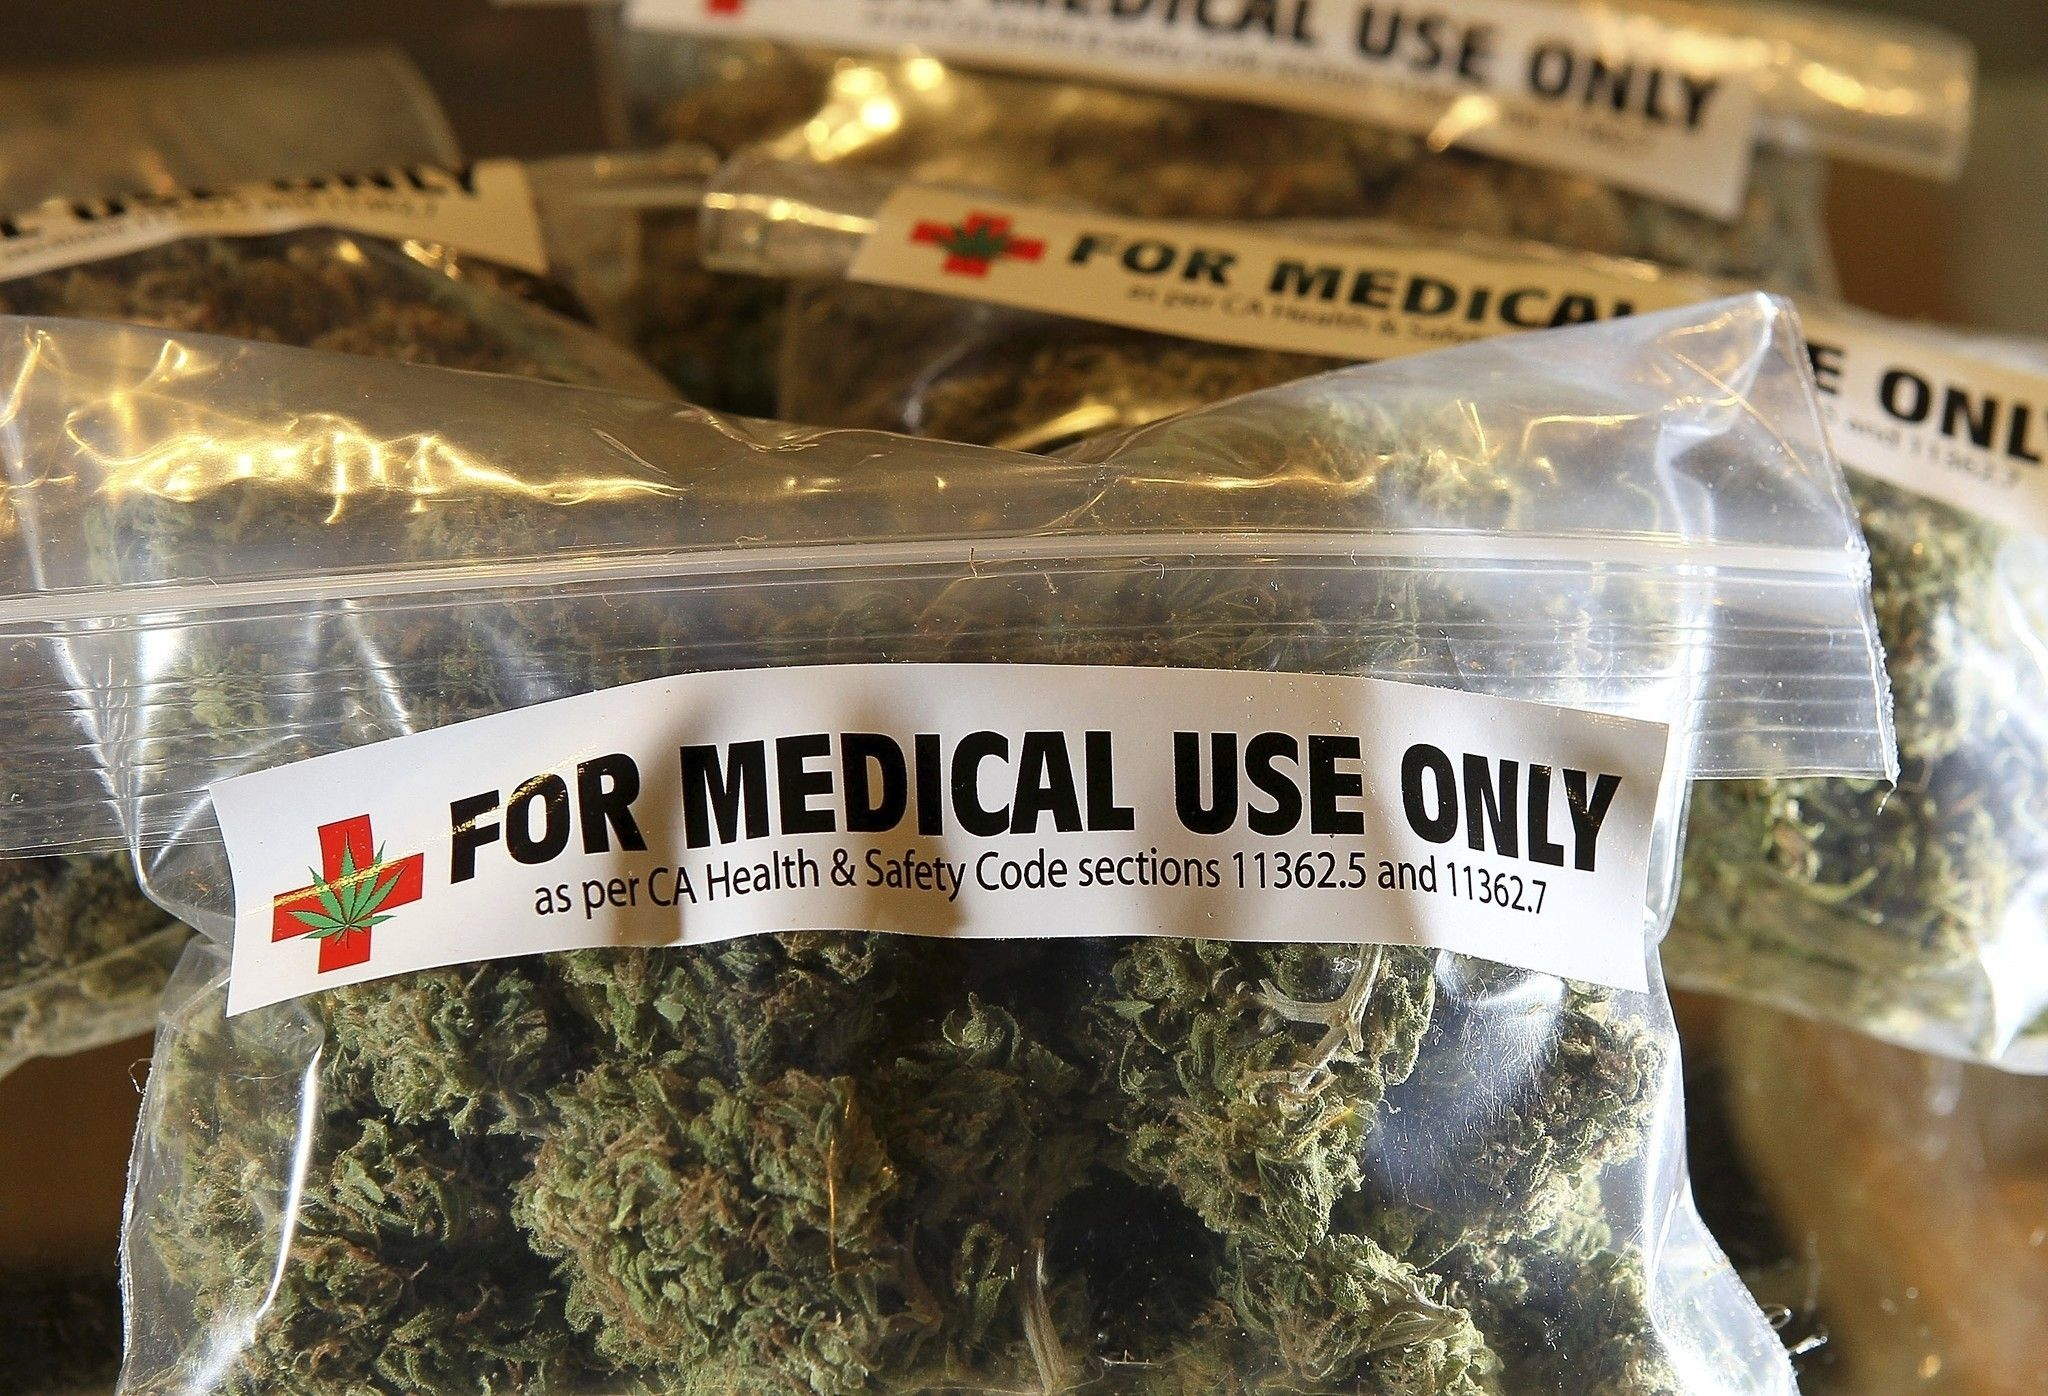 Give Florida doctors flexibility to recommend marijuana | Opinion